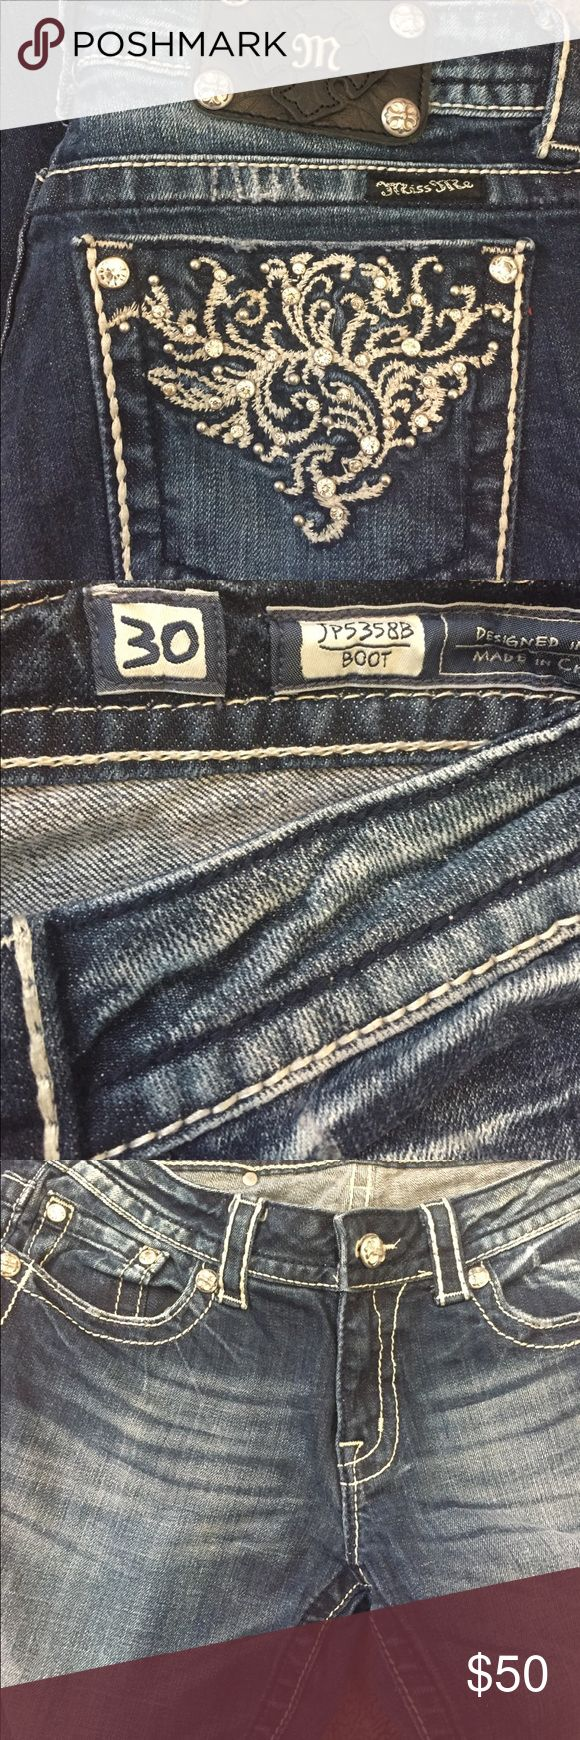 Miss Me Jeans Great condition! Inseam 30 inches. Miss Me Jeans Boot Cut